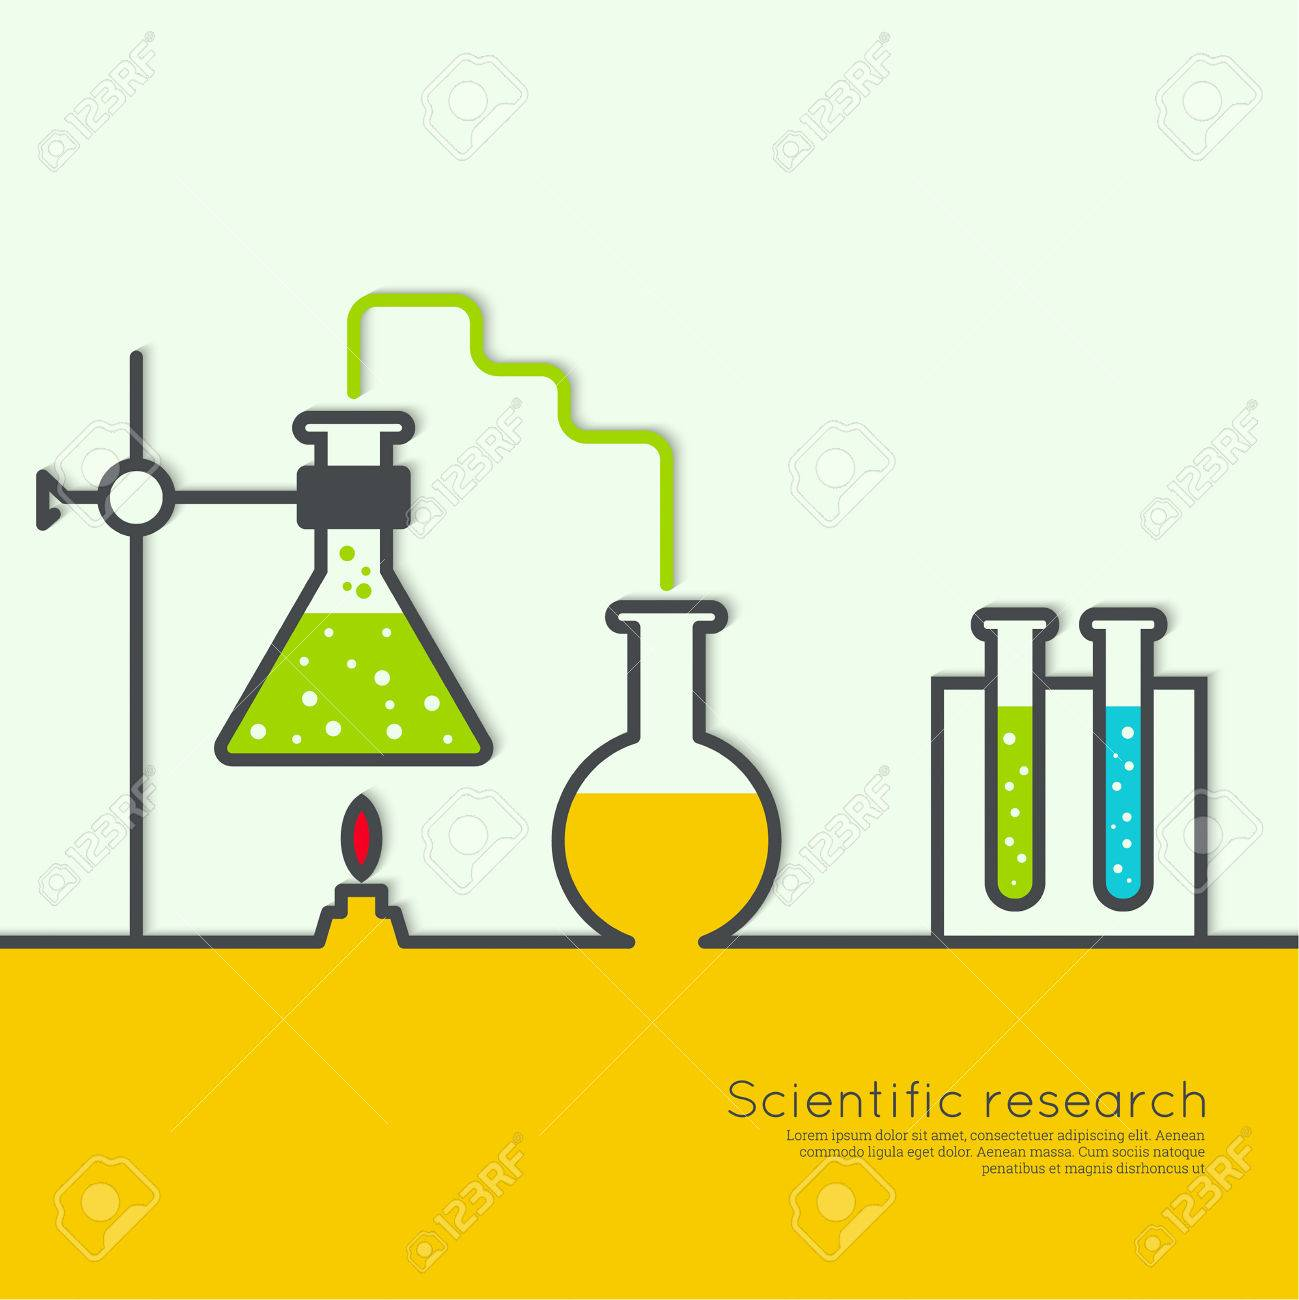 The concept of chemical science research lab retorts, beakers, flasks and other equipment. Biological and scientific tests. discovery new technologies - 50792844